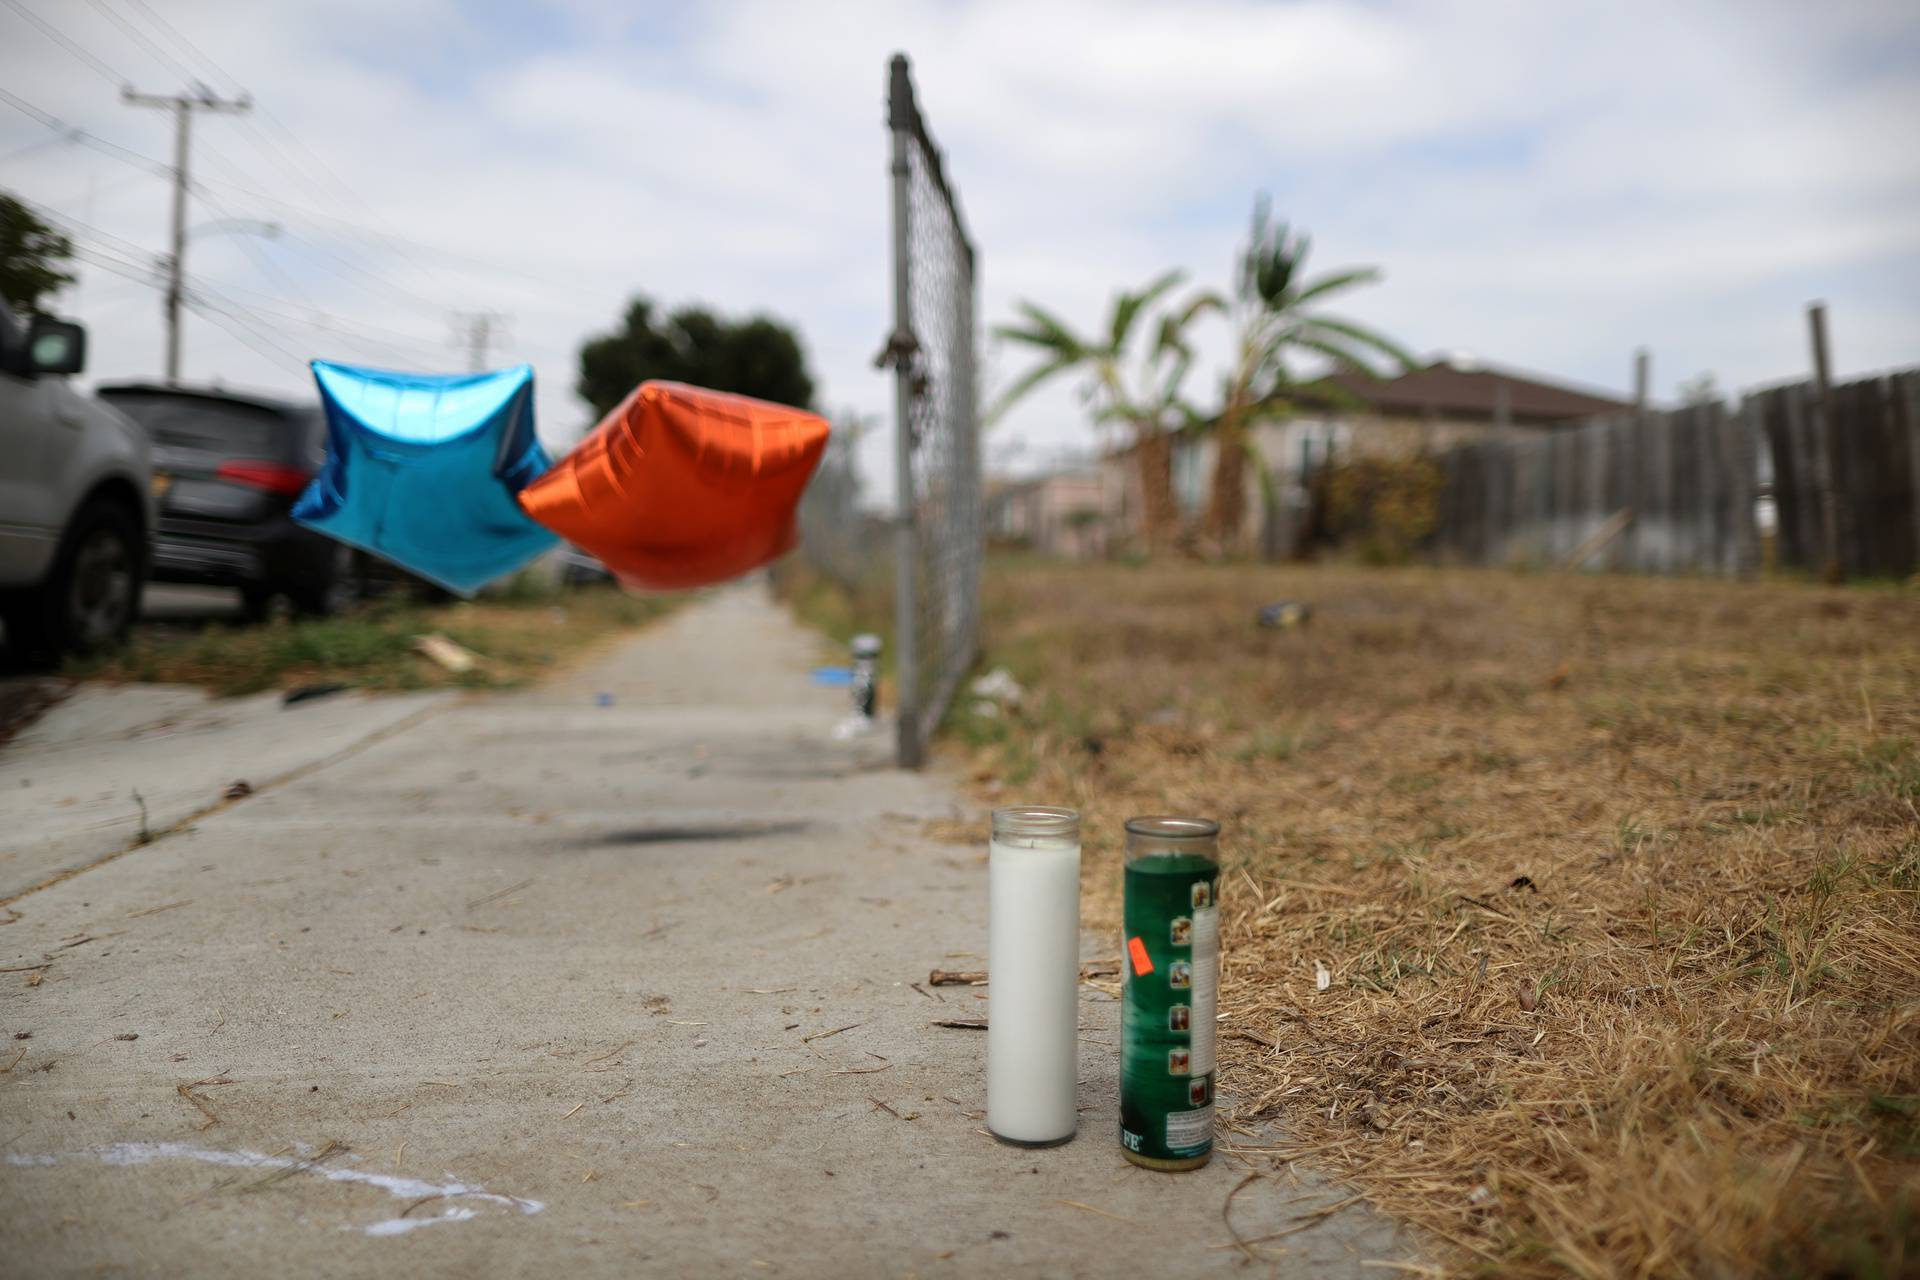 Candles are seen on the sidewalk where Dijon Kizzee, 29, was shot by Los Angeles sheriff's deputies, in Los Angeles